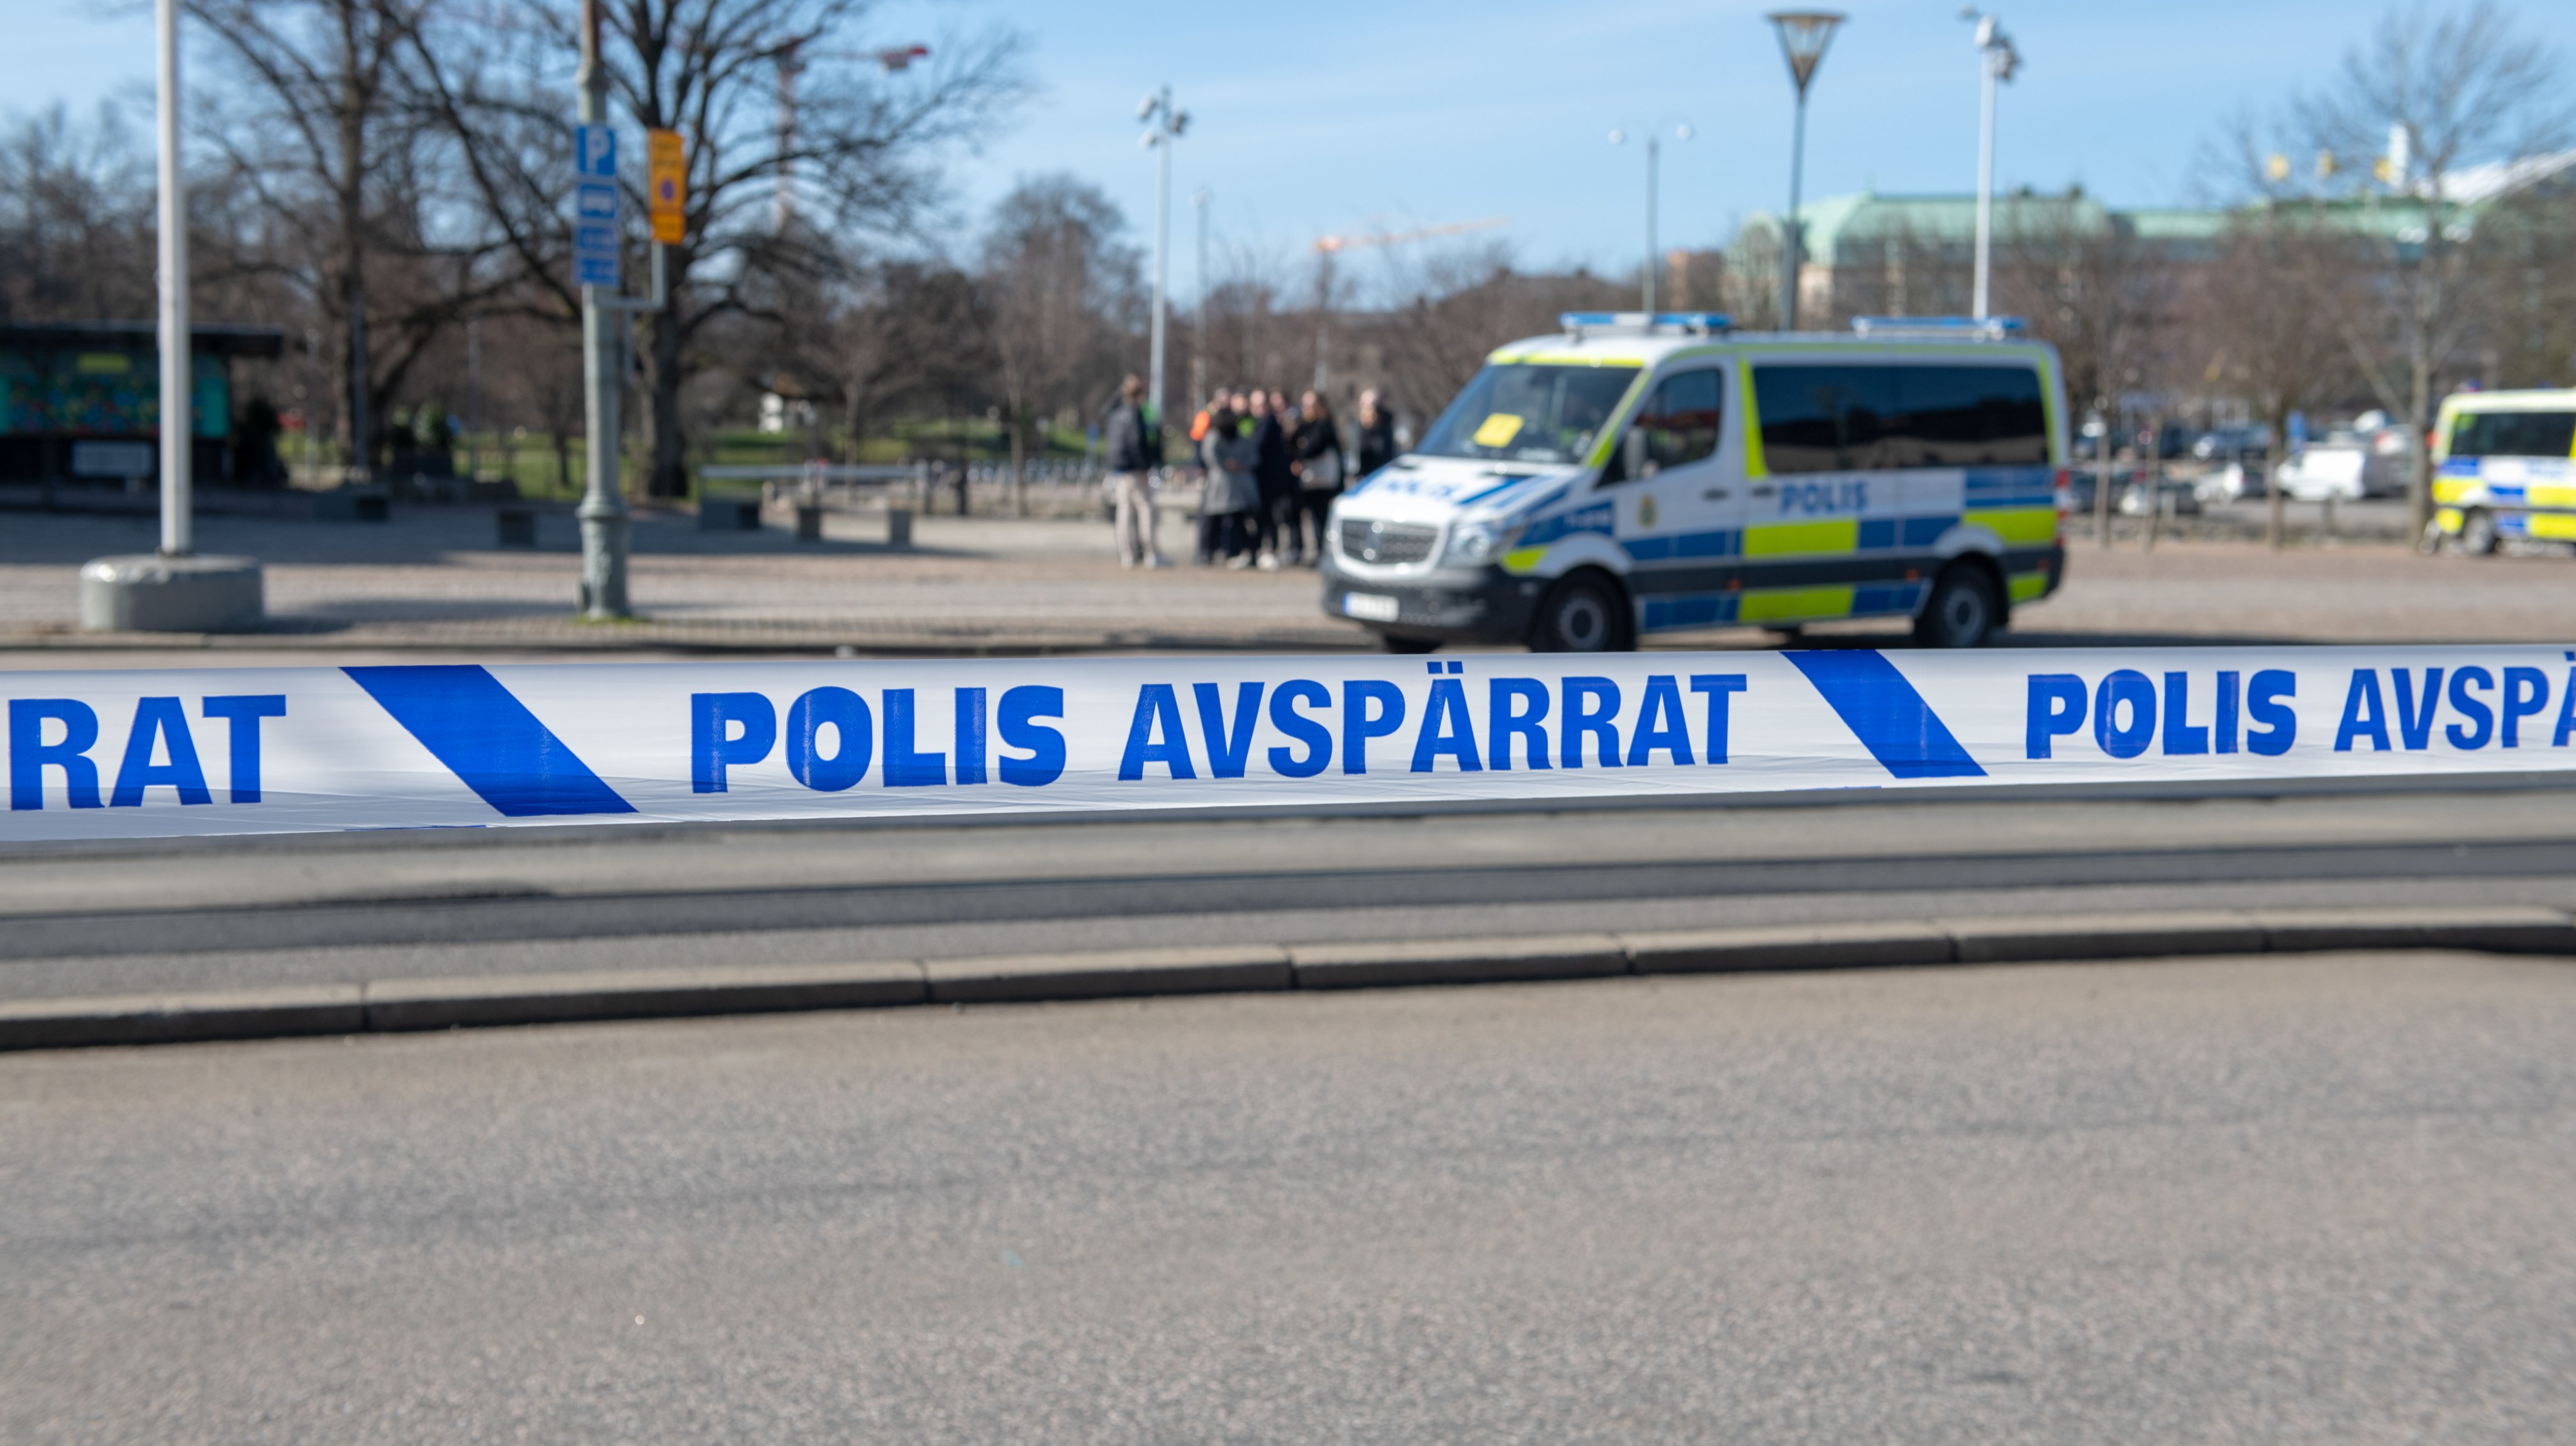 Alternative For Sweden Holds A Rally And Anti Fascist Groups Hold A Counter Protest